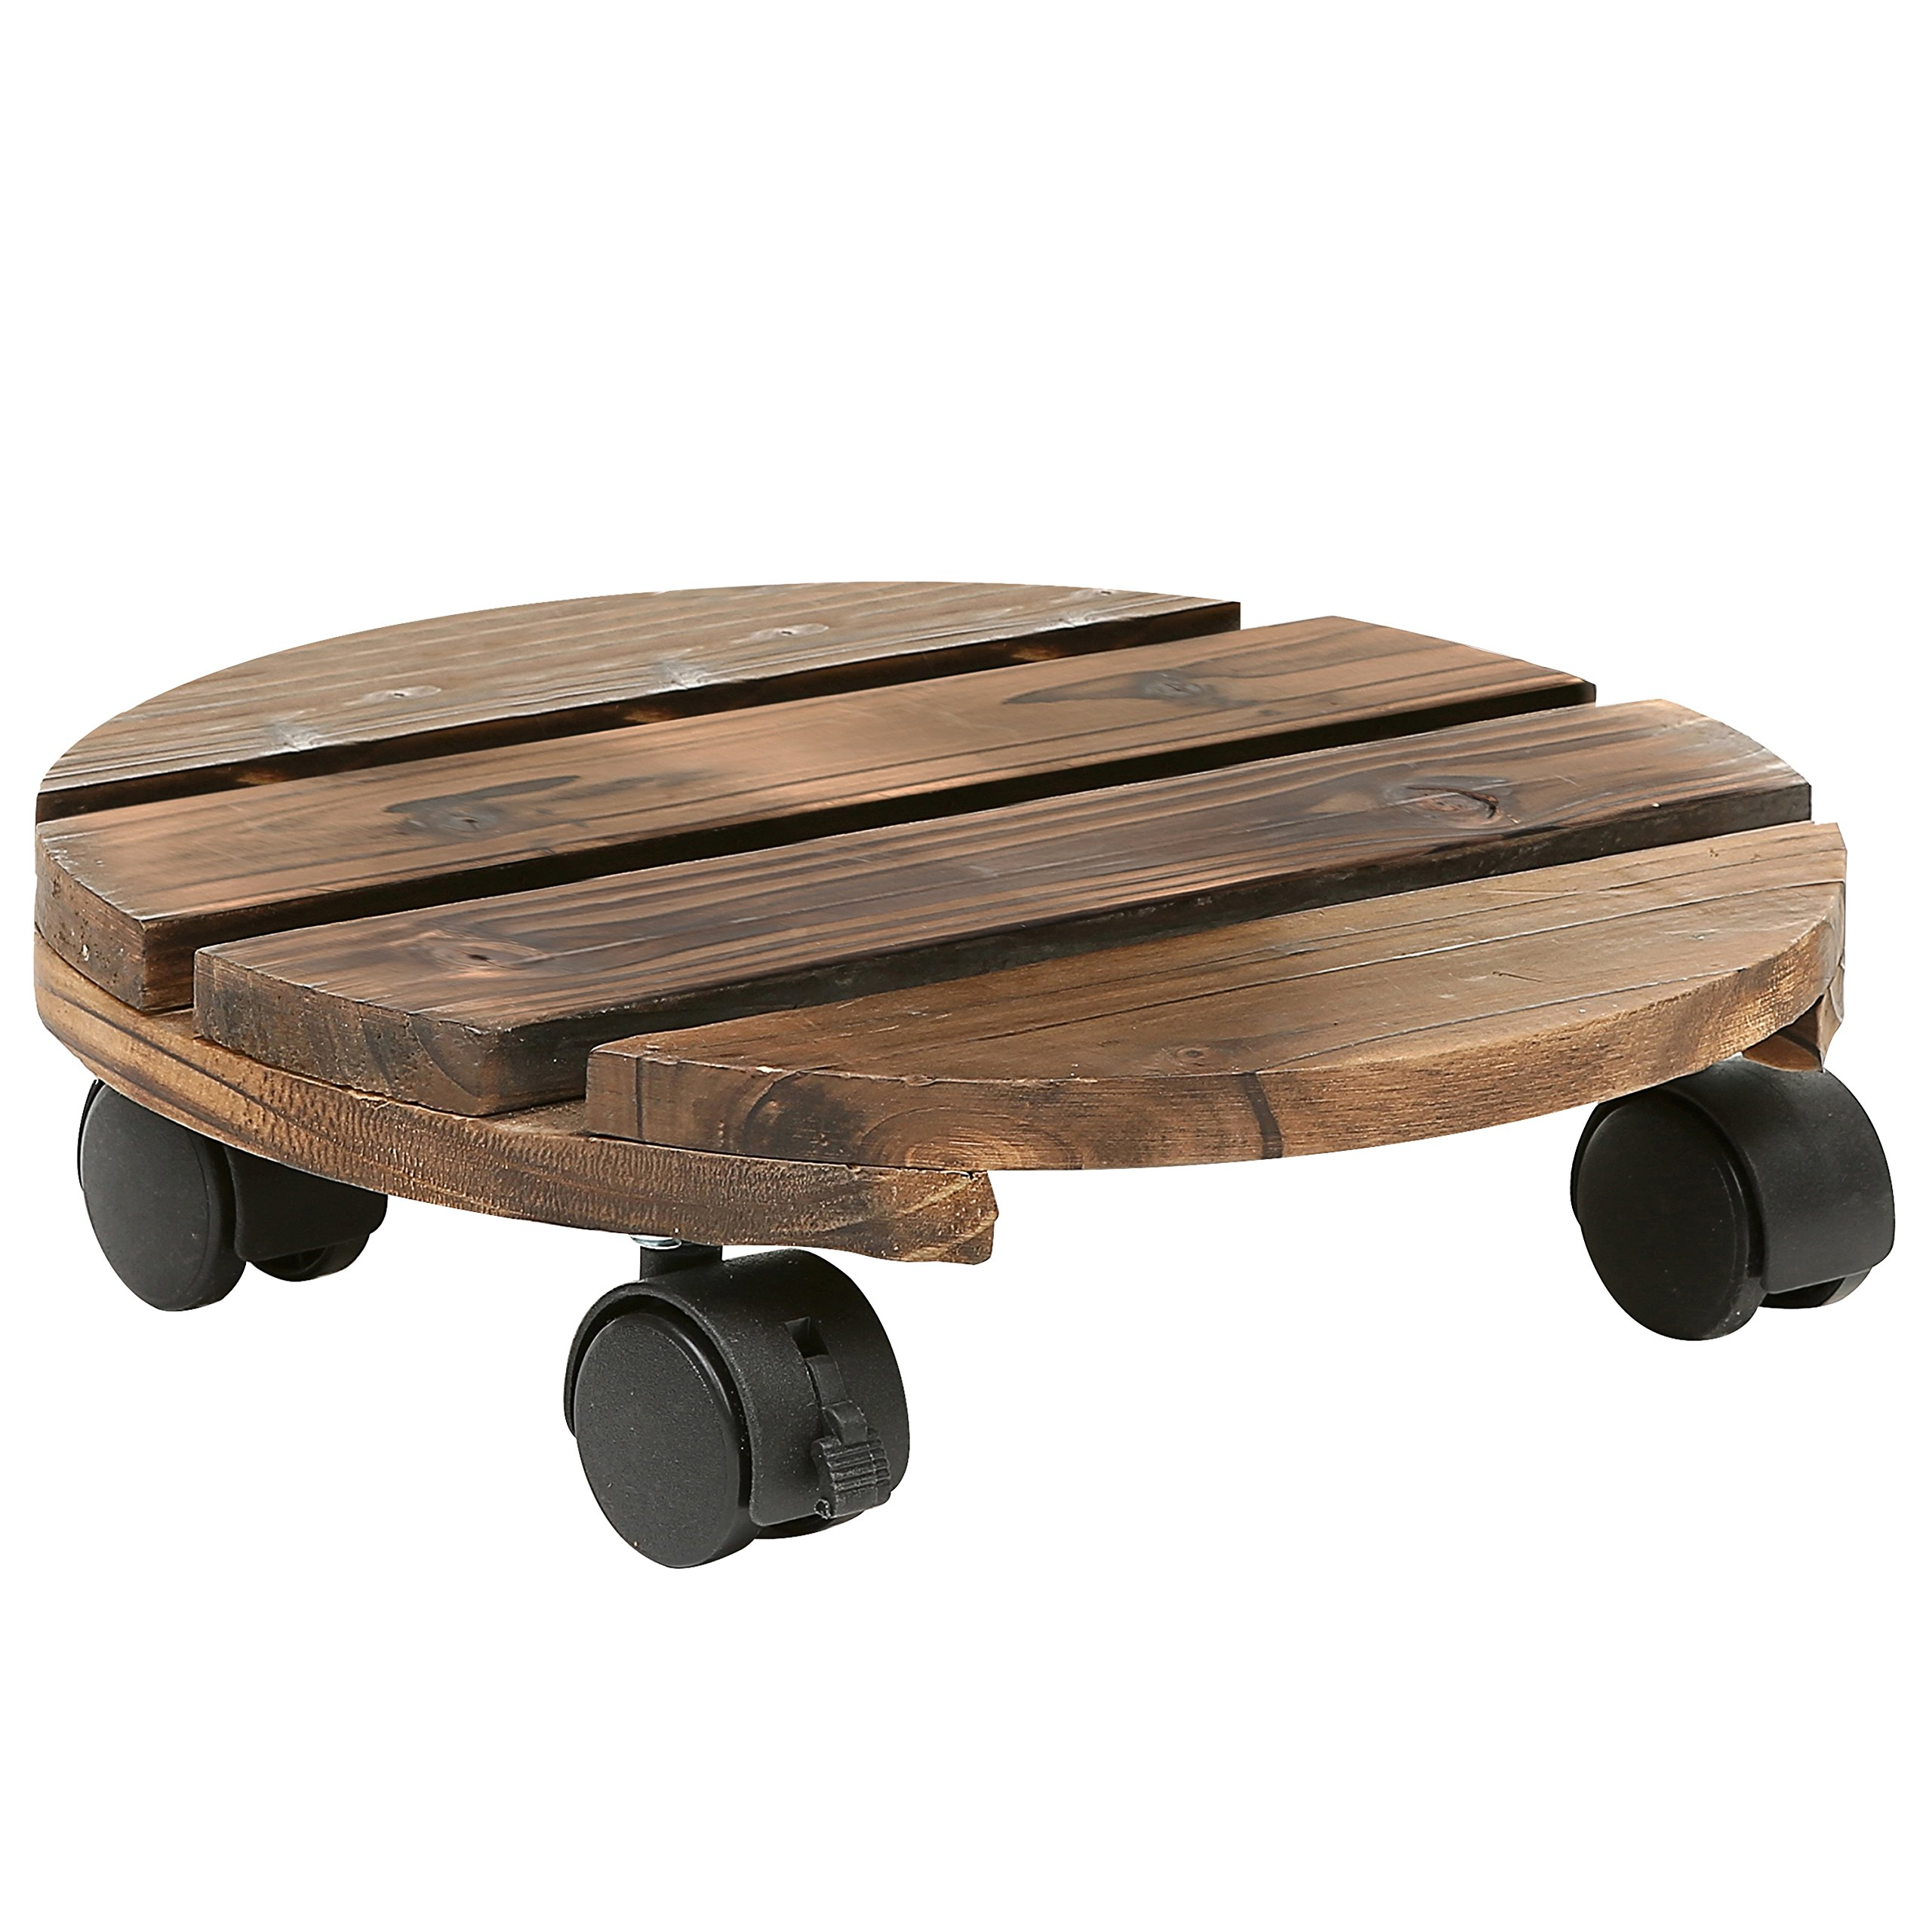 12 Inch Torched Wood Planter Caddy, Rustic Rolling Plants Dolly with Rotating Casters by MyGift